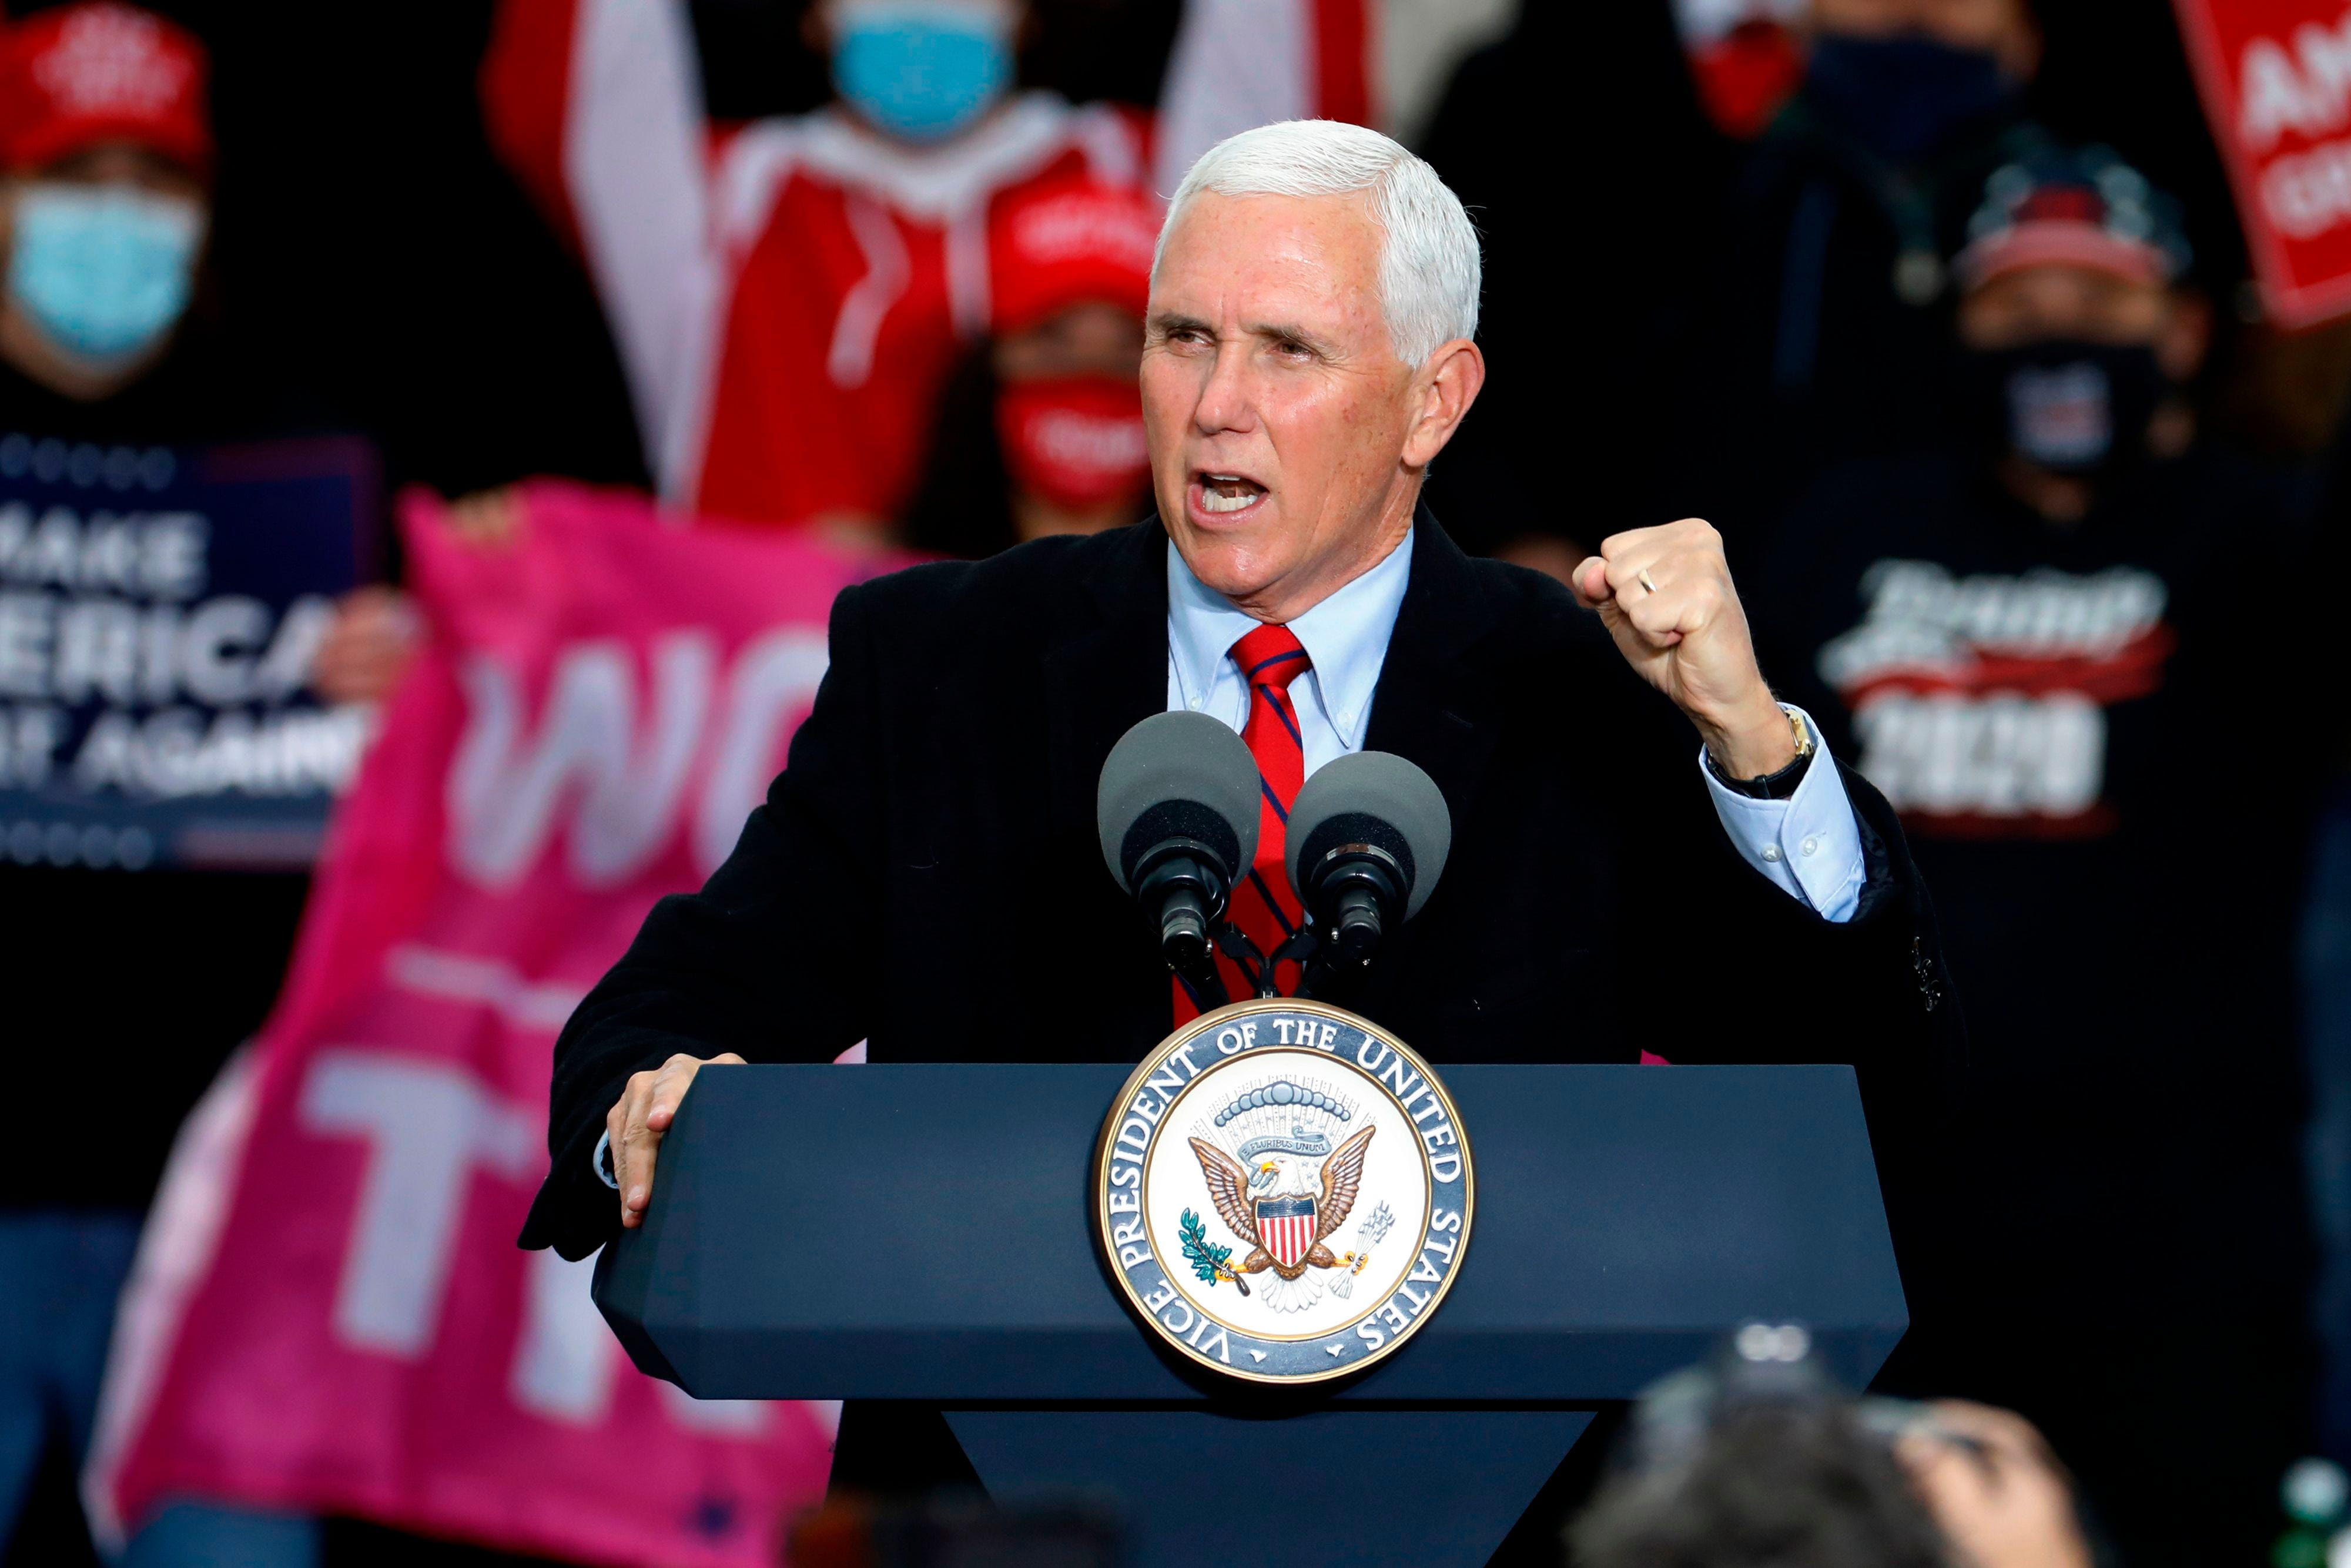 Pence will likely not attend Amy Coney Barrett confirmation on Monday night